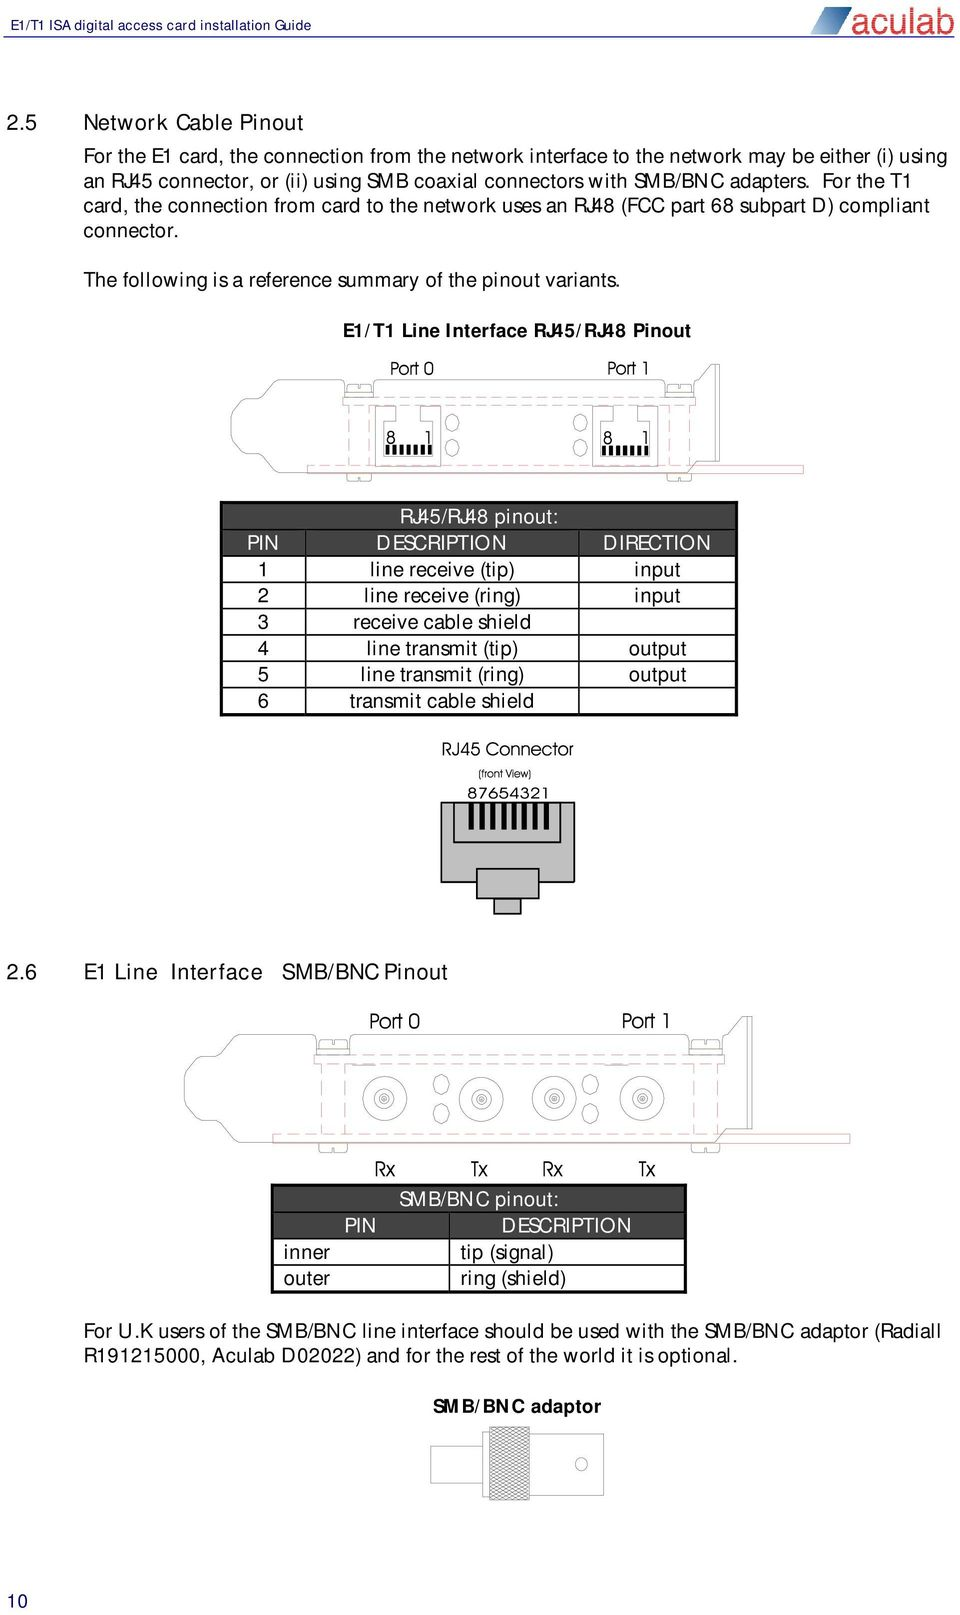 medium resolution of rj48x wiring diagram wiring diagramt1 rj48 wiring 1 wiring diagram source